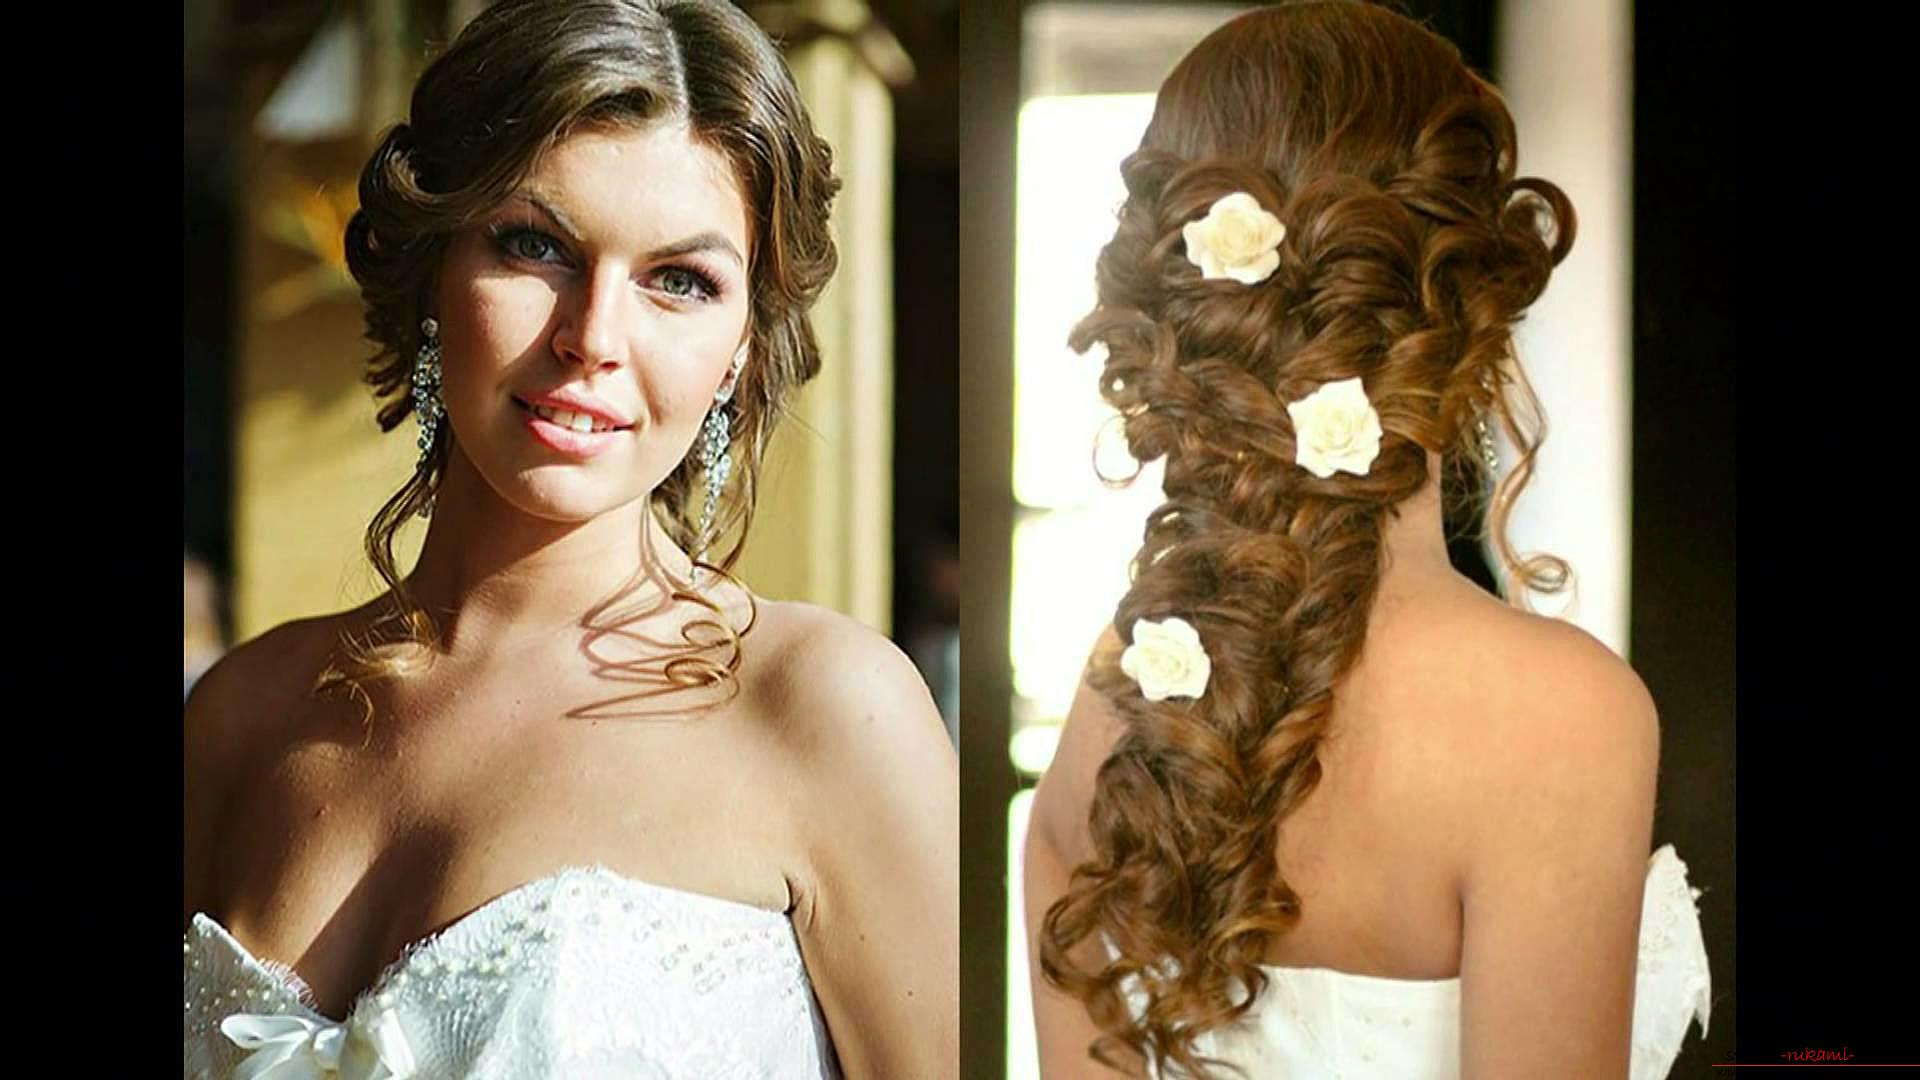 Hairstyles for the bride, topical in 2016. Photo №5